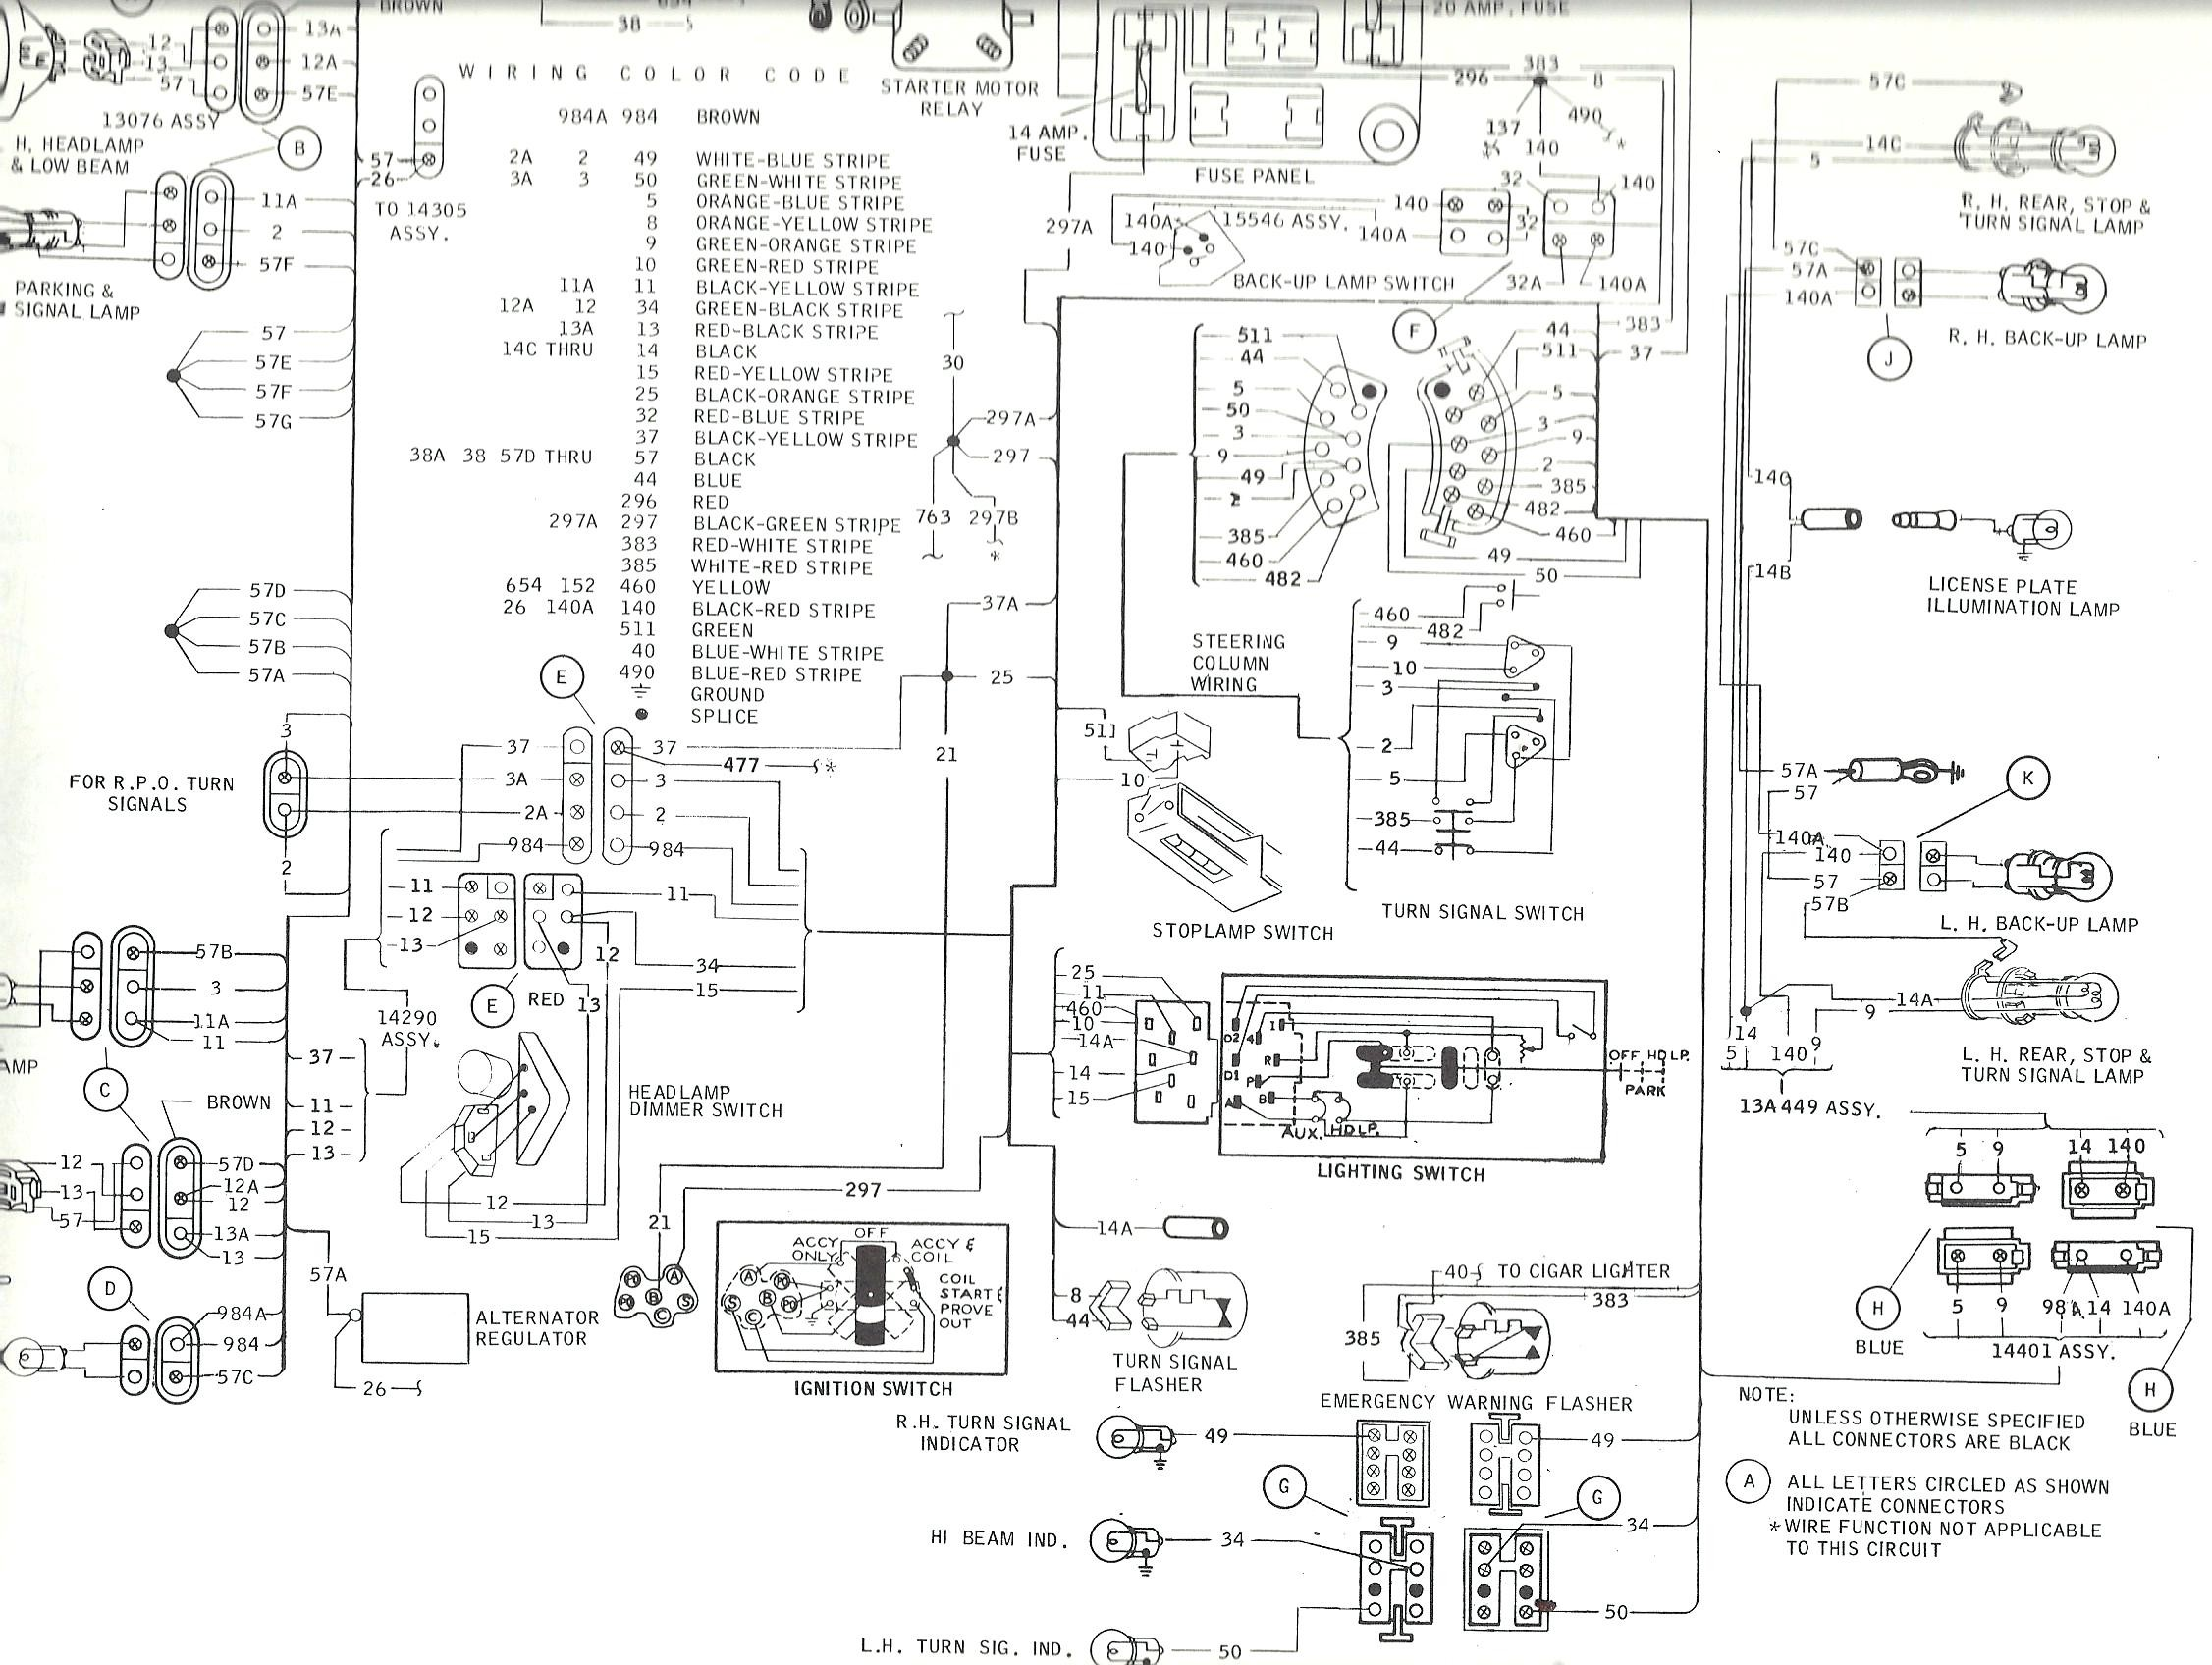 1968 Mustang Wiring Diagram 1990 Ford Alternator Engine Turn Signal Switch Fuse S The Of